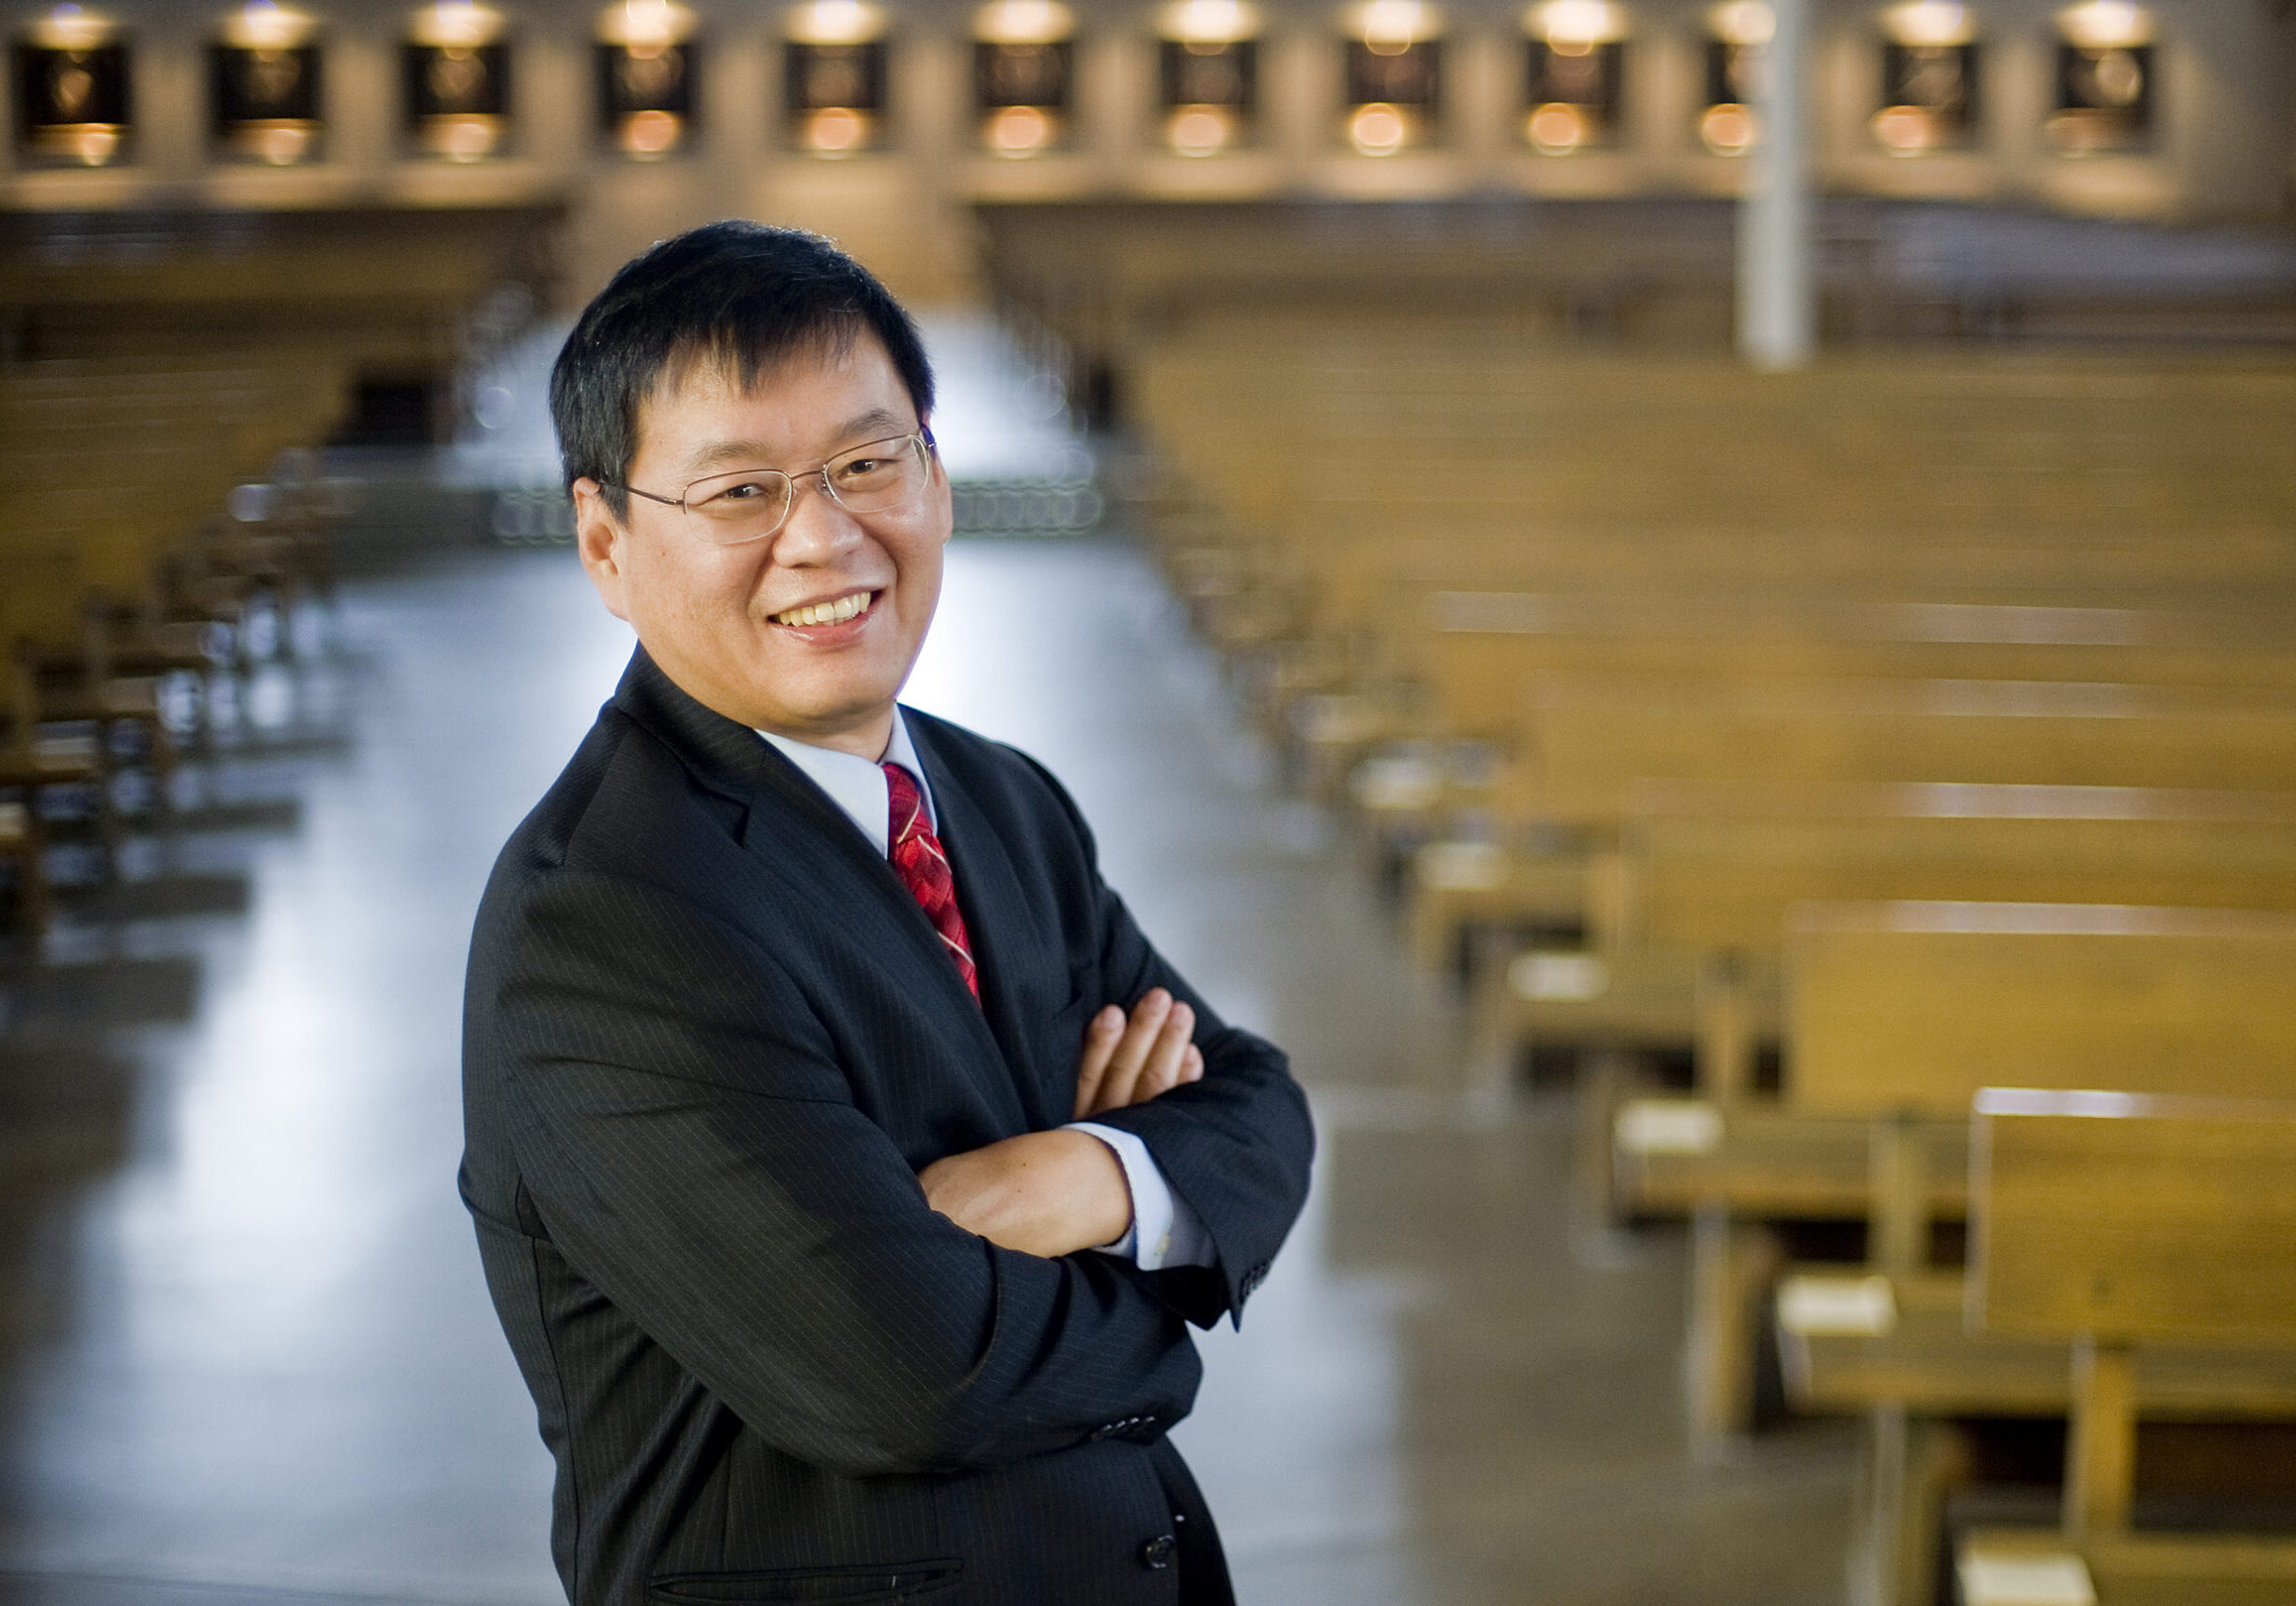 """Fenggang Yang, a professor of sociology and director of Purdue's Center on Religion and Chinese Society, is the author of """"Religion in China: Survival and Revival Under Communist Rule."""" Yang, who was one of the first to study the sociology of religion in China, has been collecting data since 2000. His new book, which was published by Oxford University Press this fall, looks at religion under communism from the 1950s to 2010. (Purdue University photo/Andrew Hancock)"""